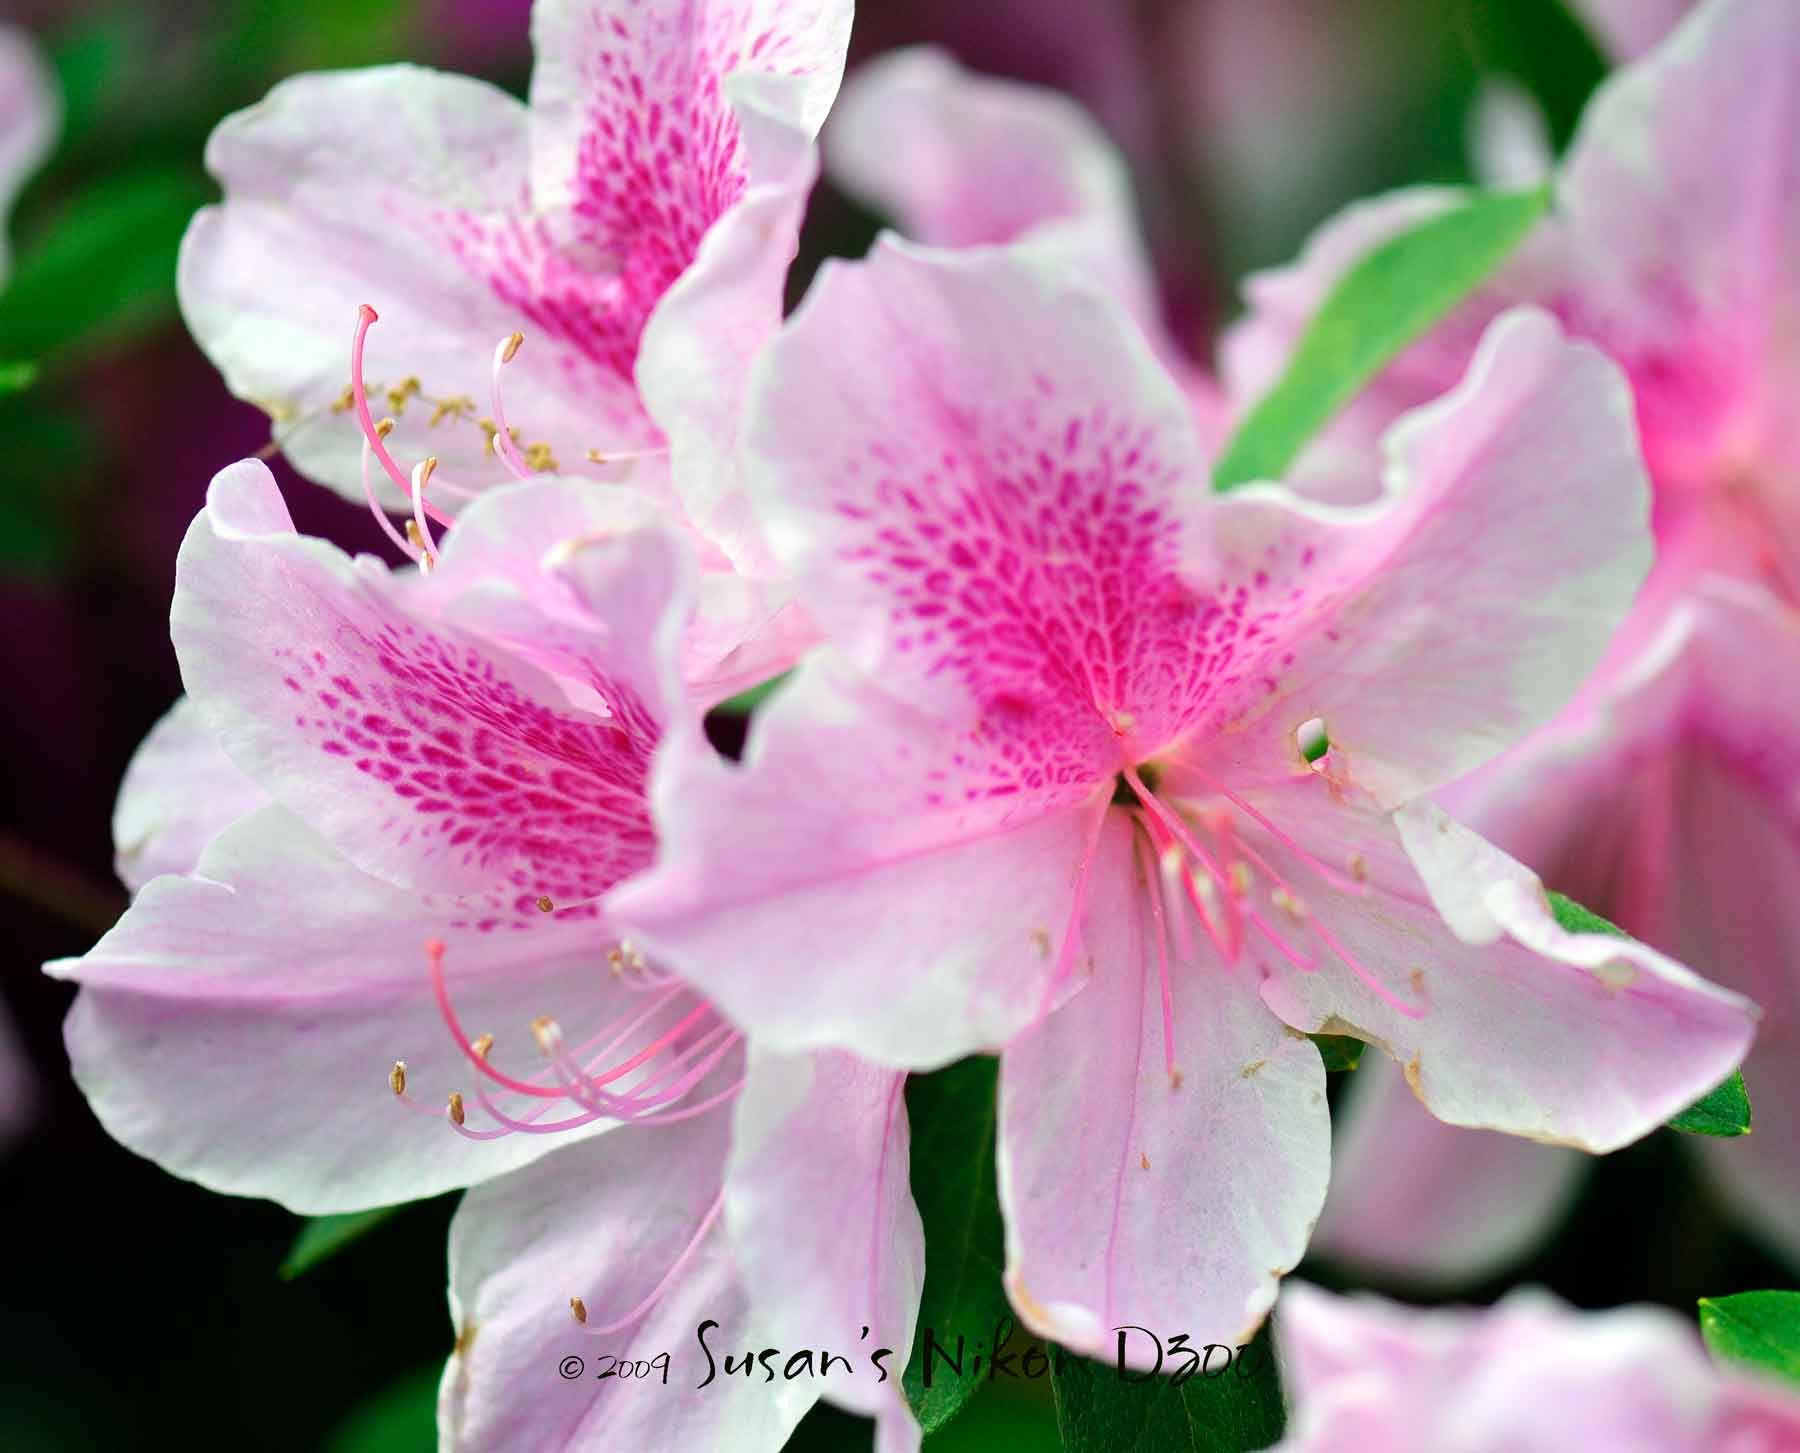 212 free azalea flower images flowers their language 212 free azalea flower images mightylinksfo